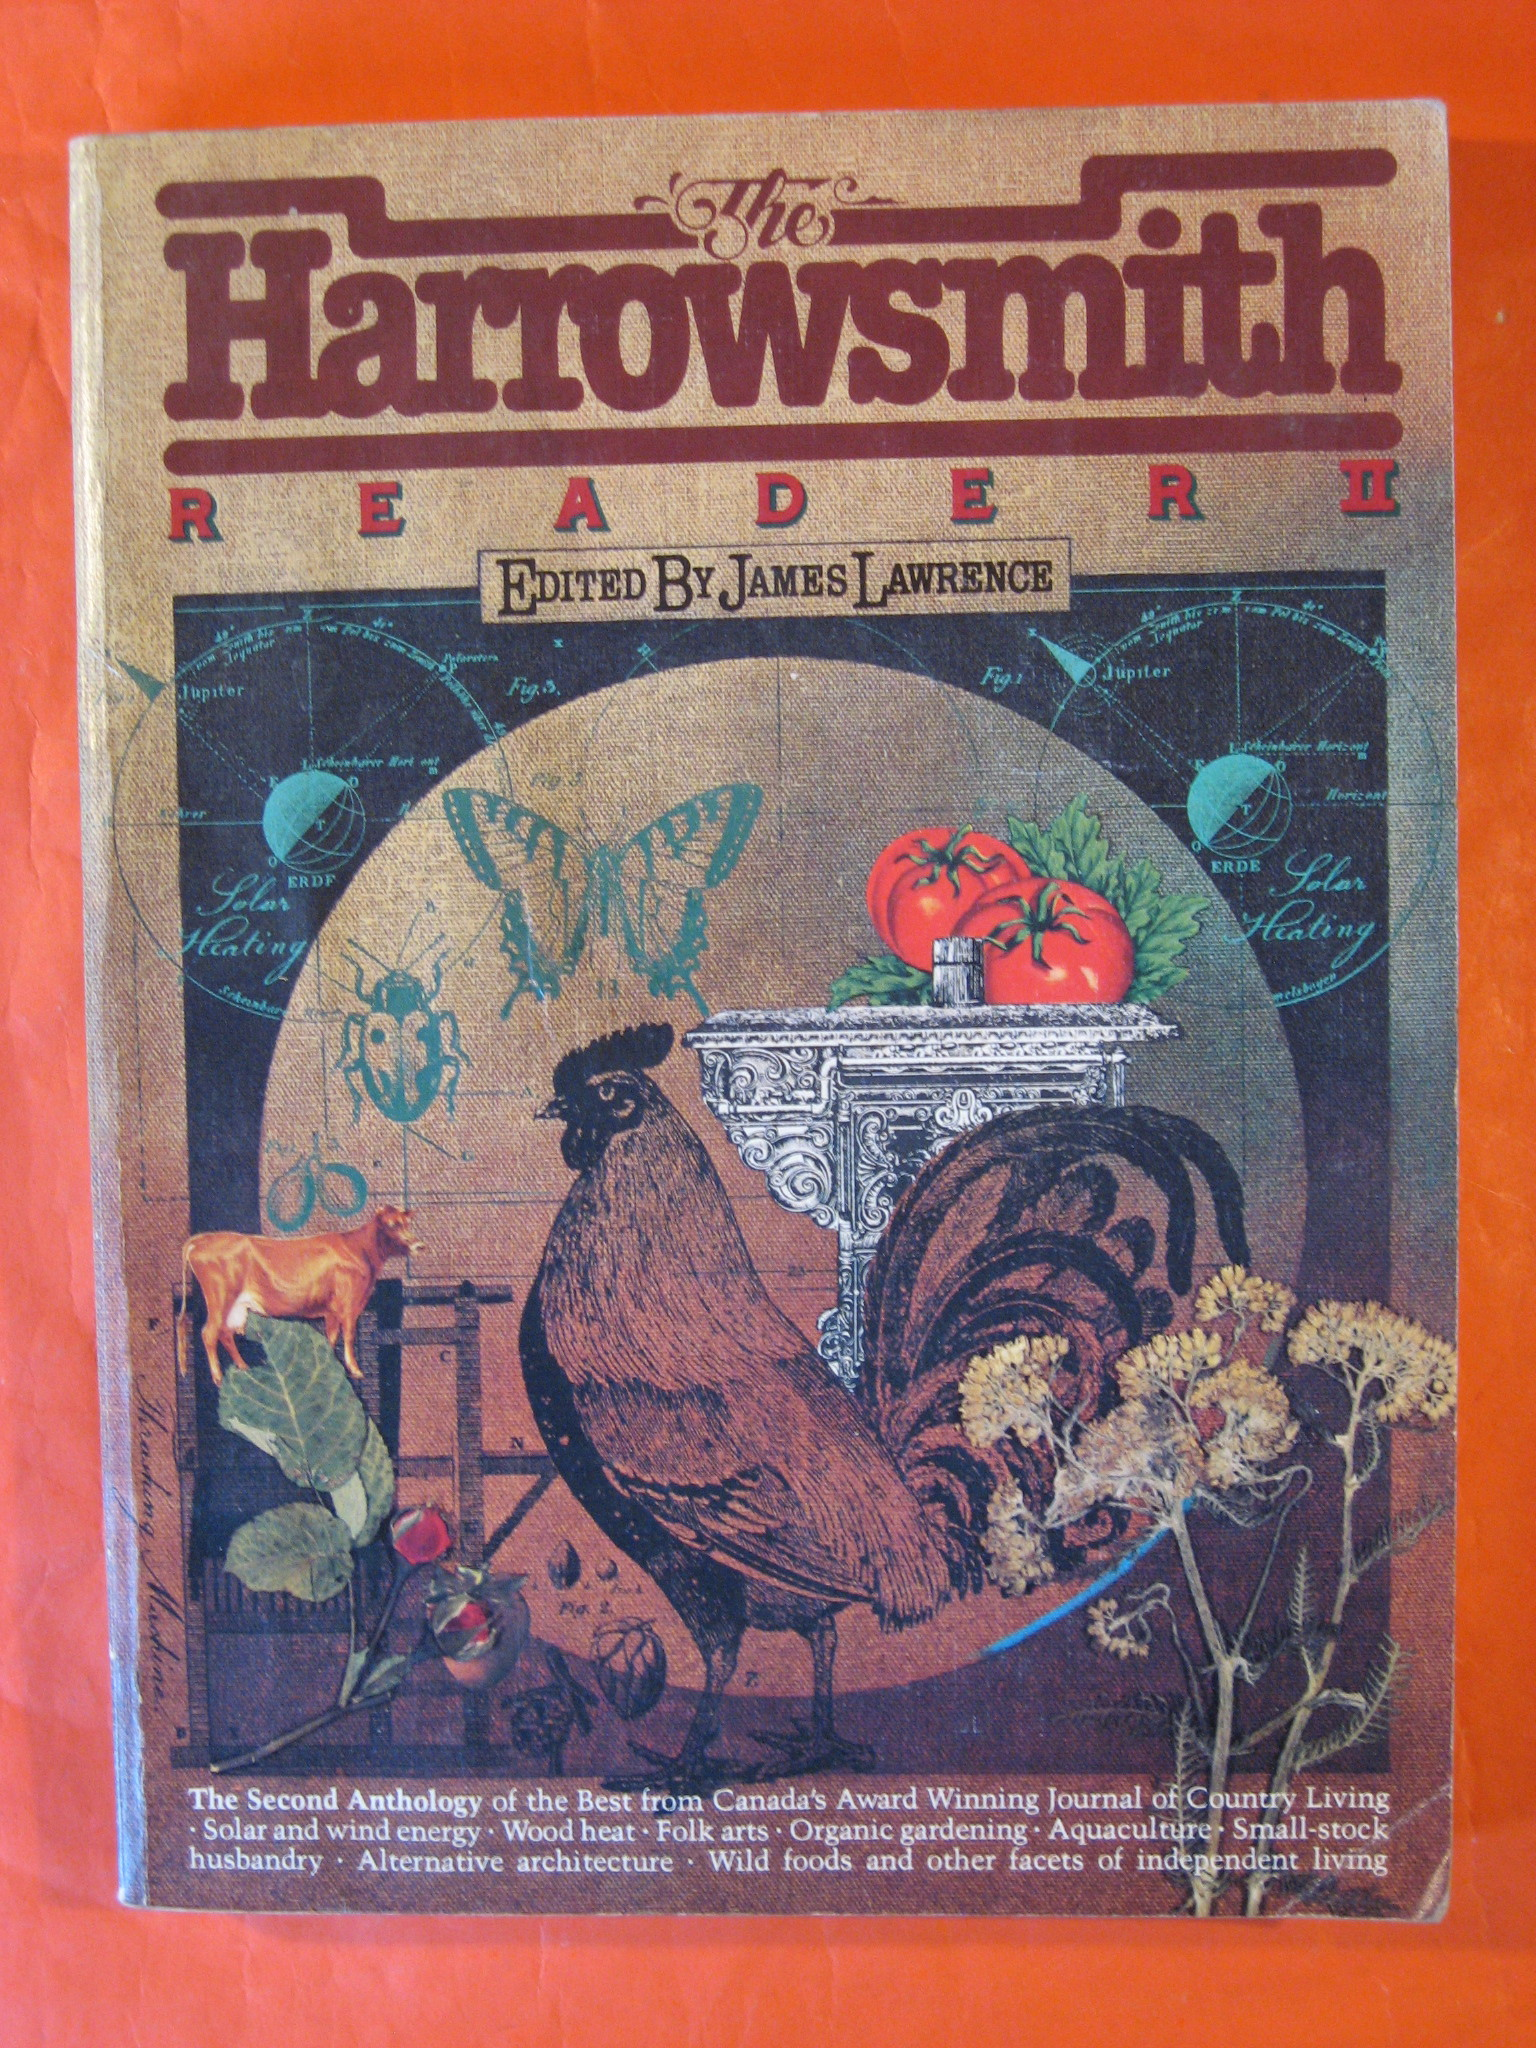 Harrowsmith Reader II: The Second Anthology of the Best from Canada's Journal Of Country Living, Lawrence